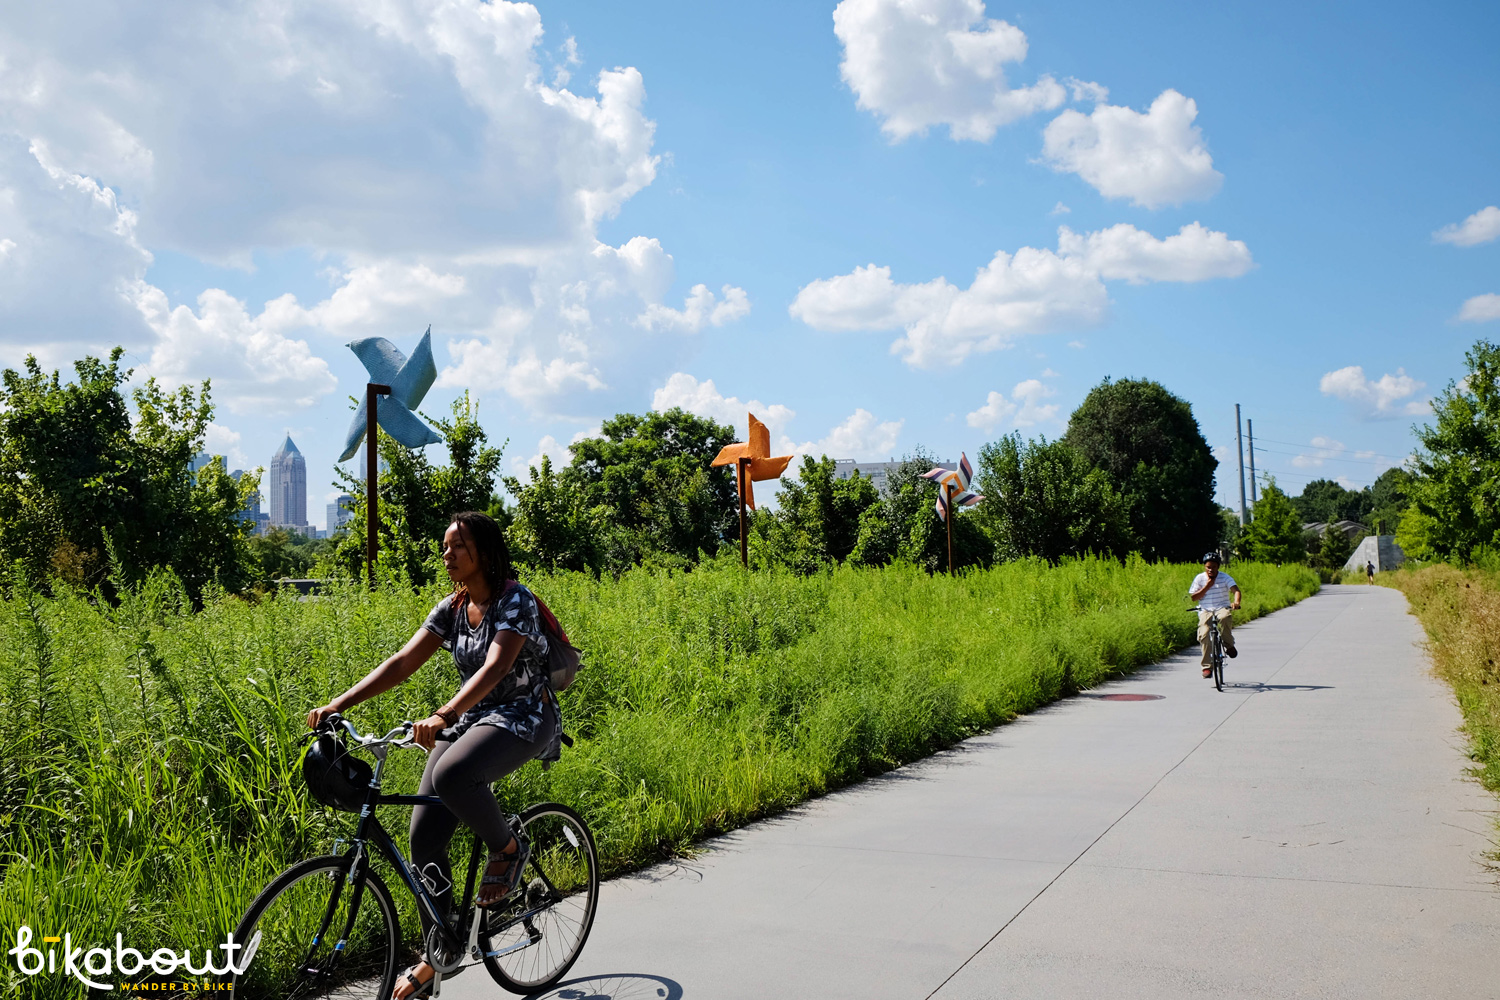 Your city is winning when you don't have to scour to find a young, black woman riding a bike.